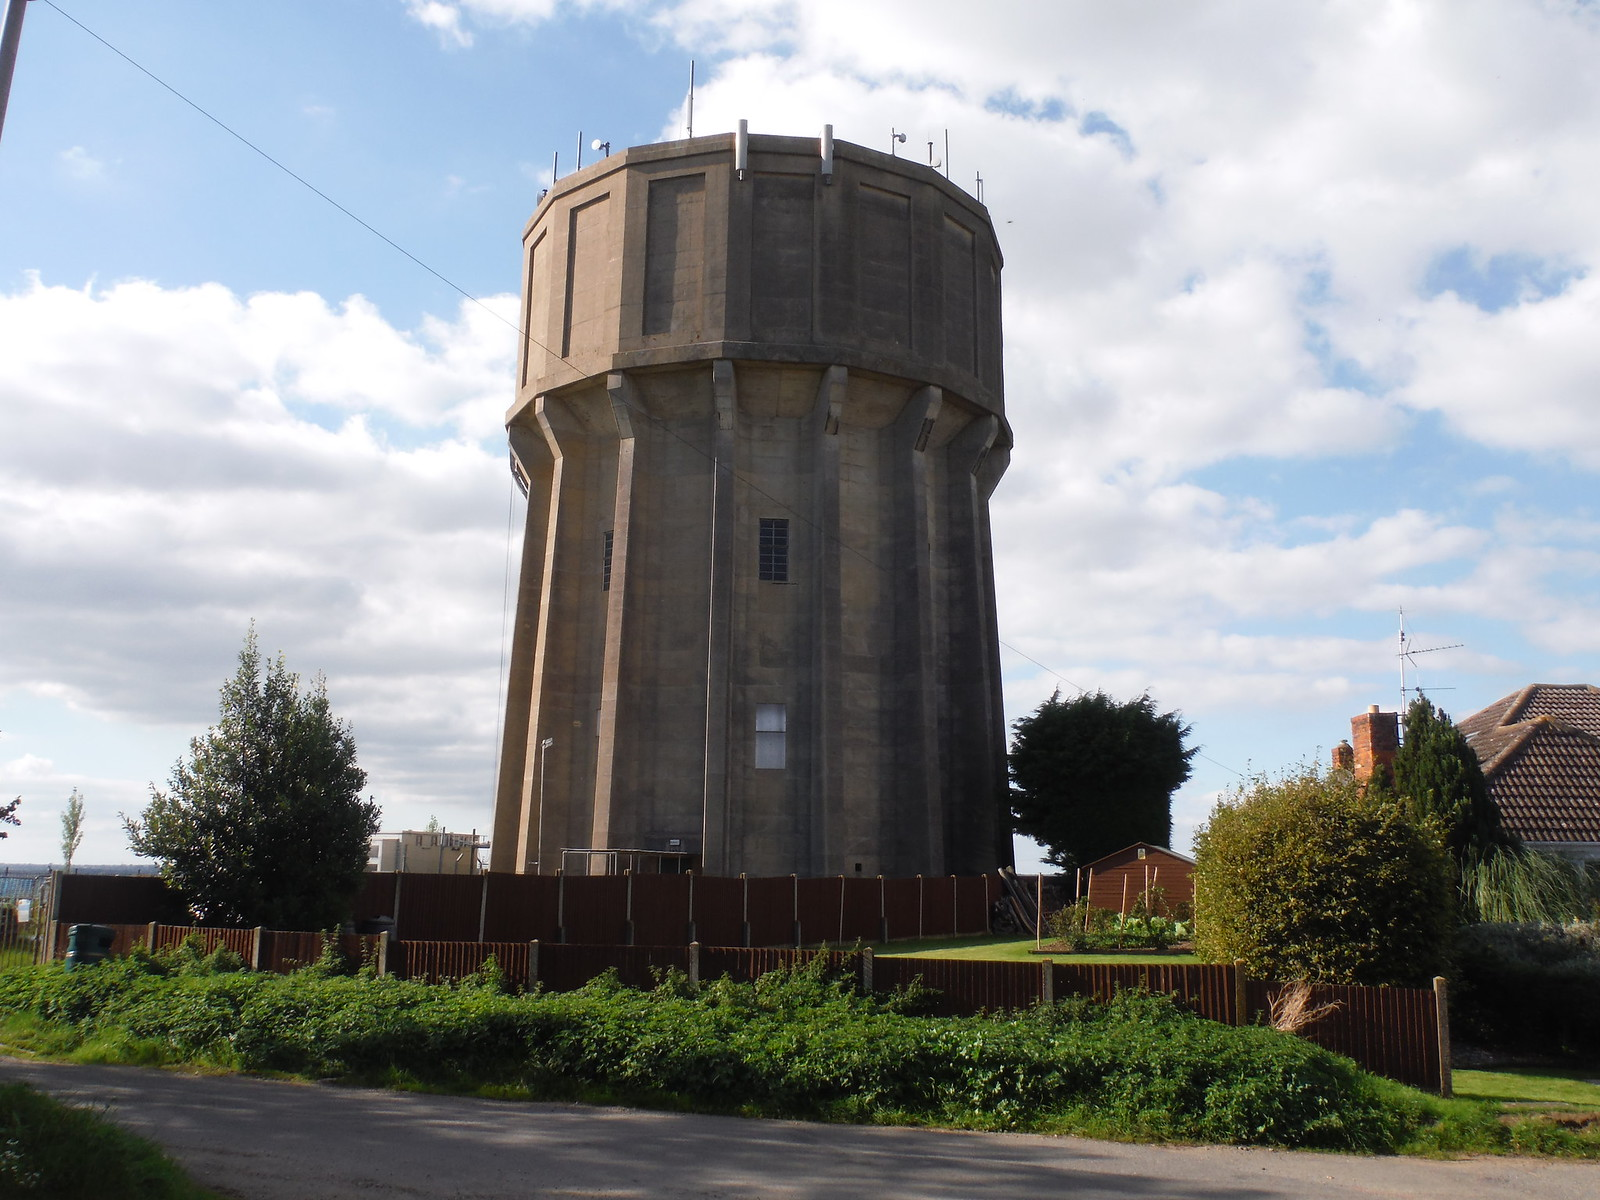 Pulloxhill Water Tower SWC Walk 230 Harlington to Flitwick